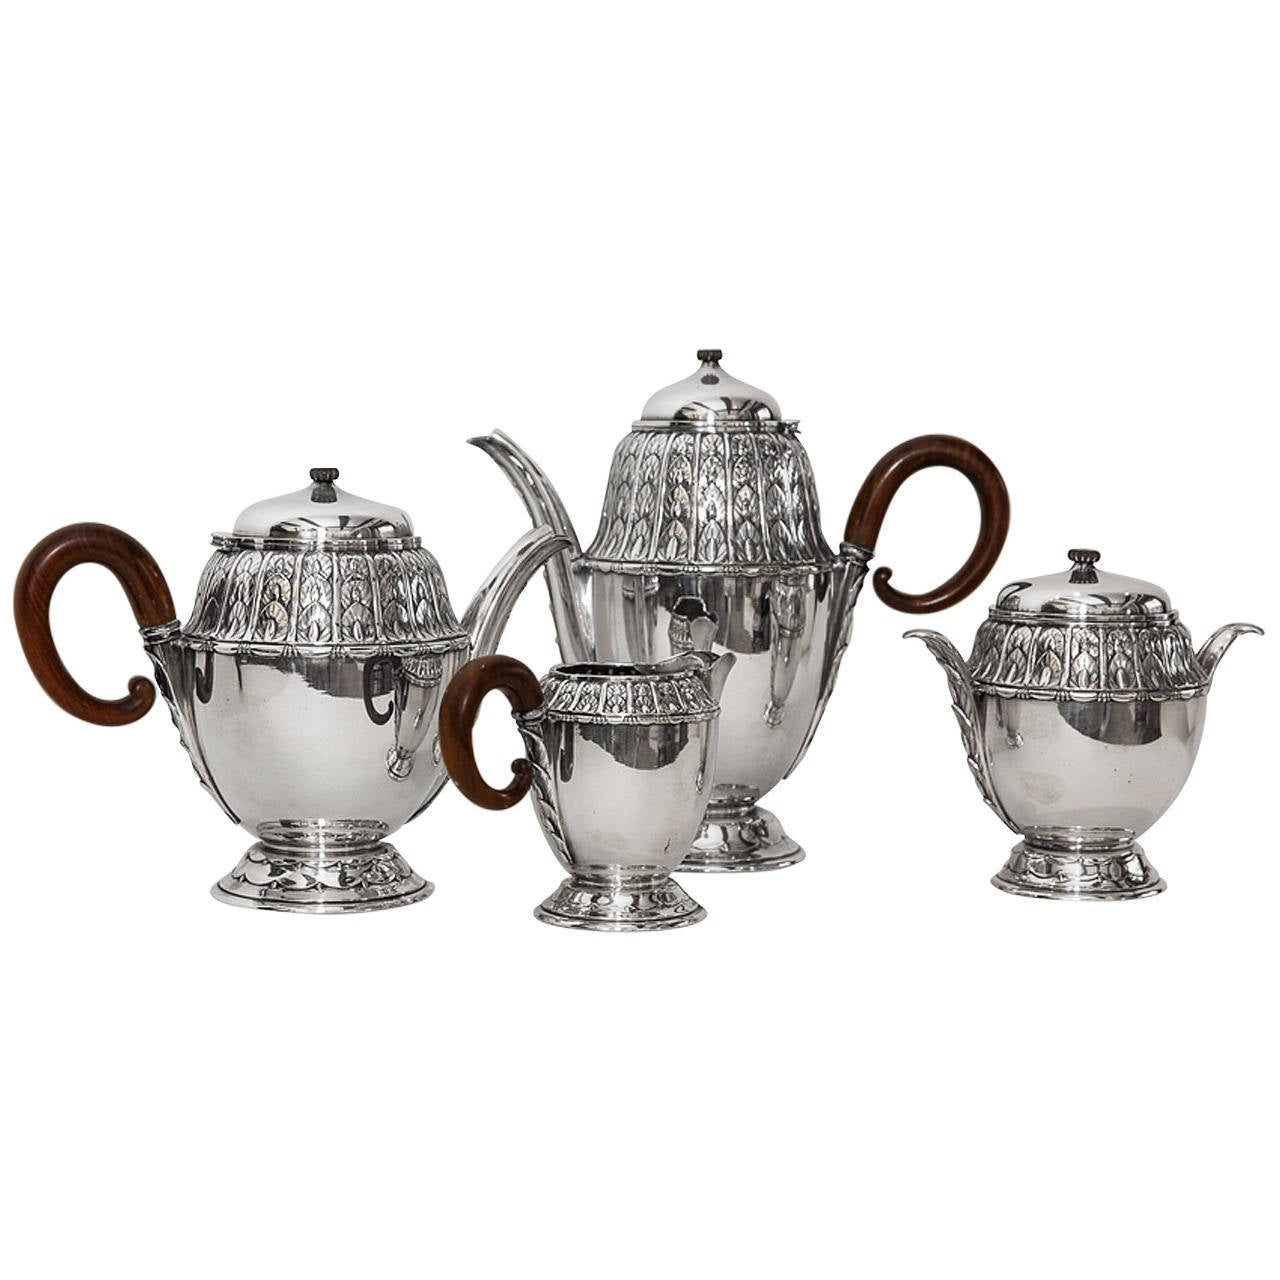 Paul Follot French Art Deco Silver Plate Coffee Service At